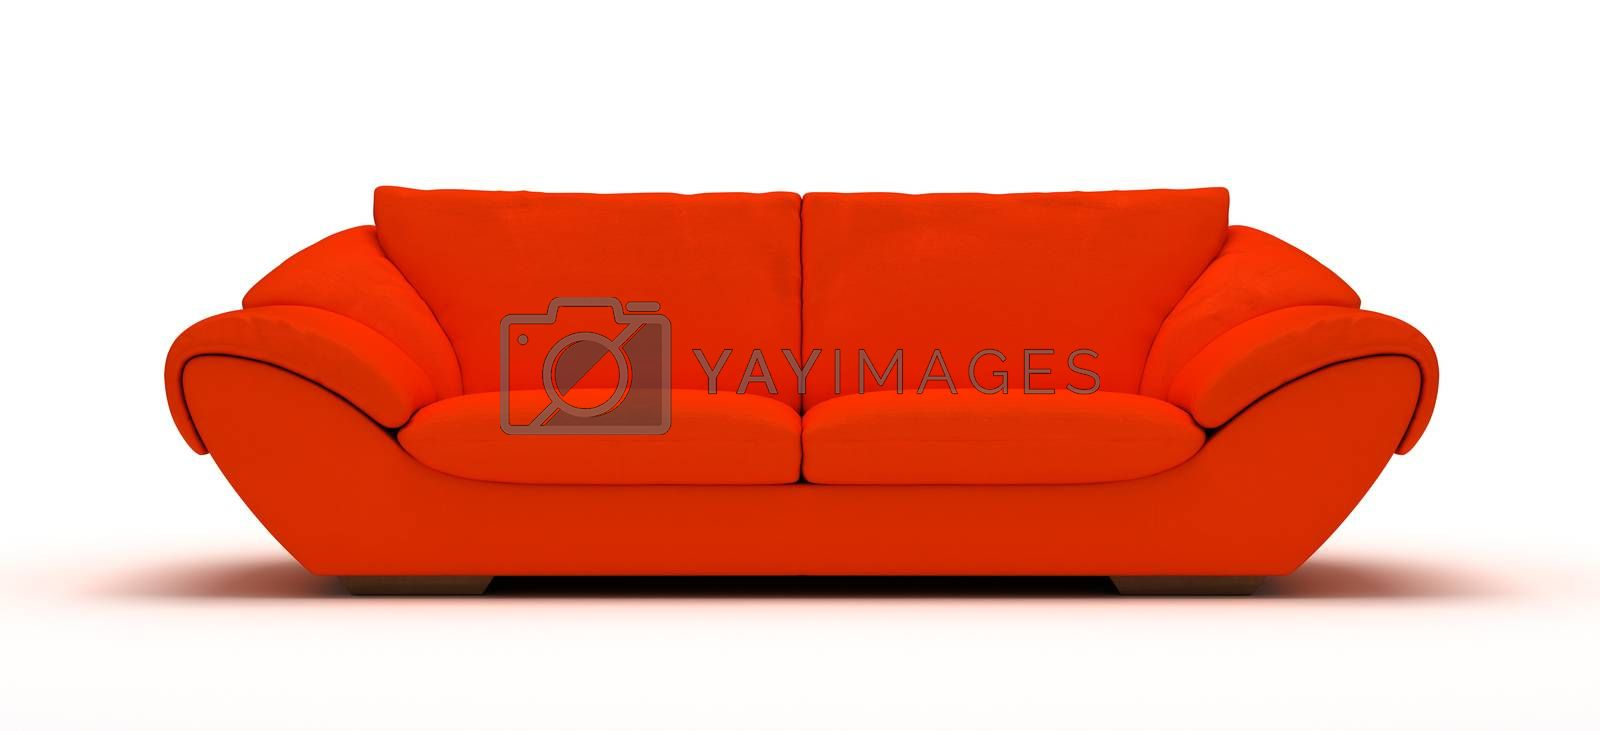 Royalty free image of Leather Sofa by selensergen